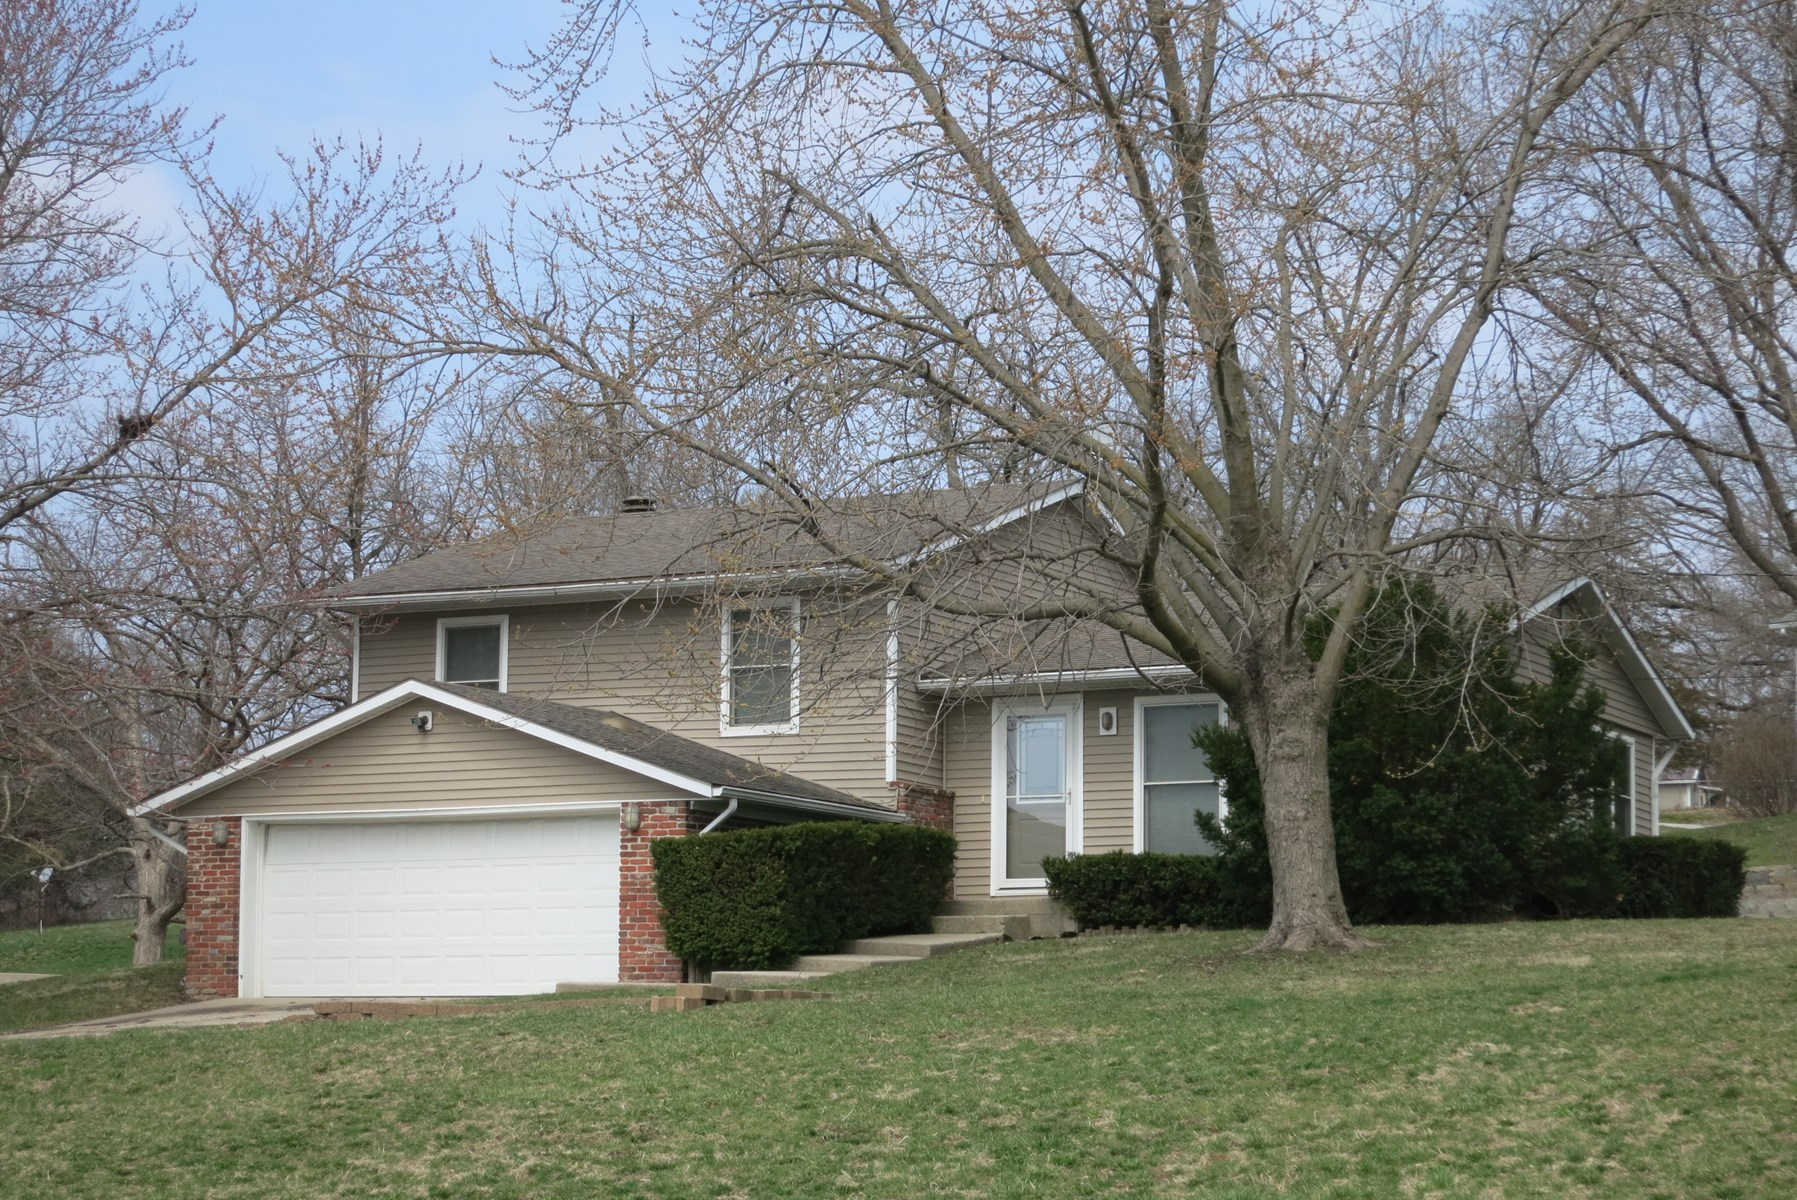 Home For Sale in Bethany Missouri